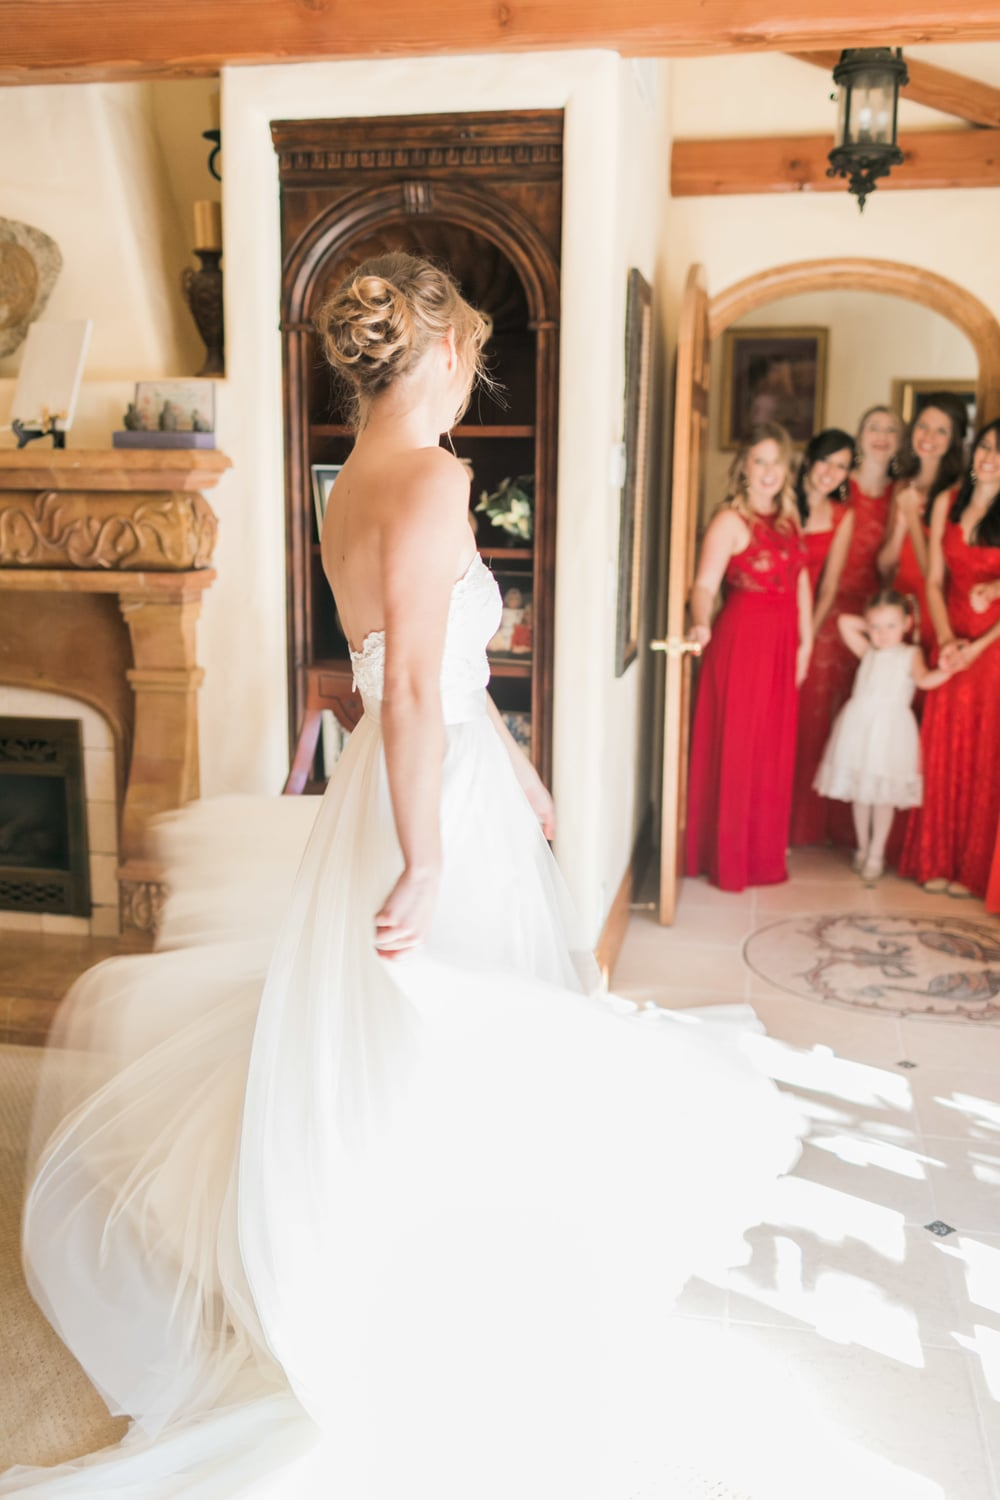 Natalie_Schutt_Photography_Winter_Wedding_San_Luis_Obispo-39.jpg